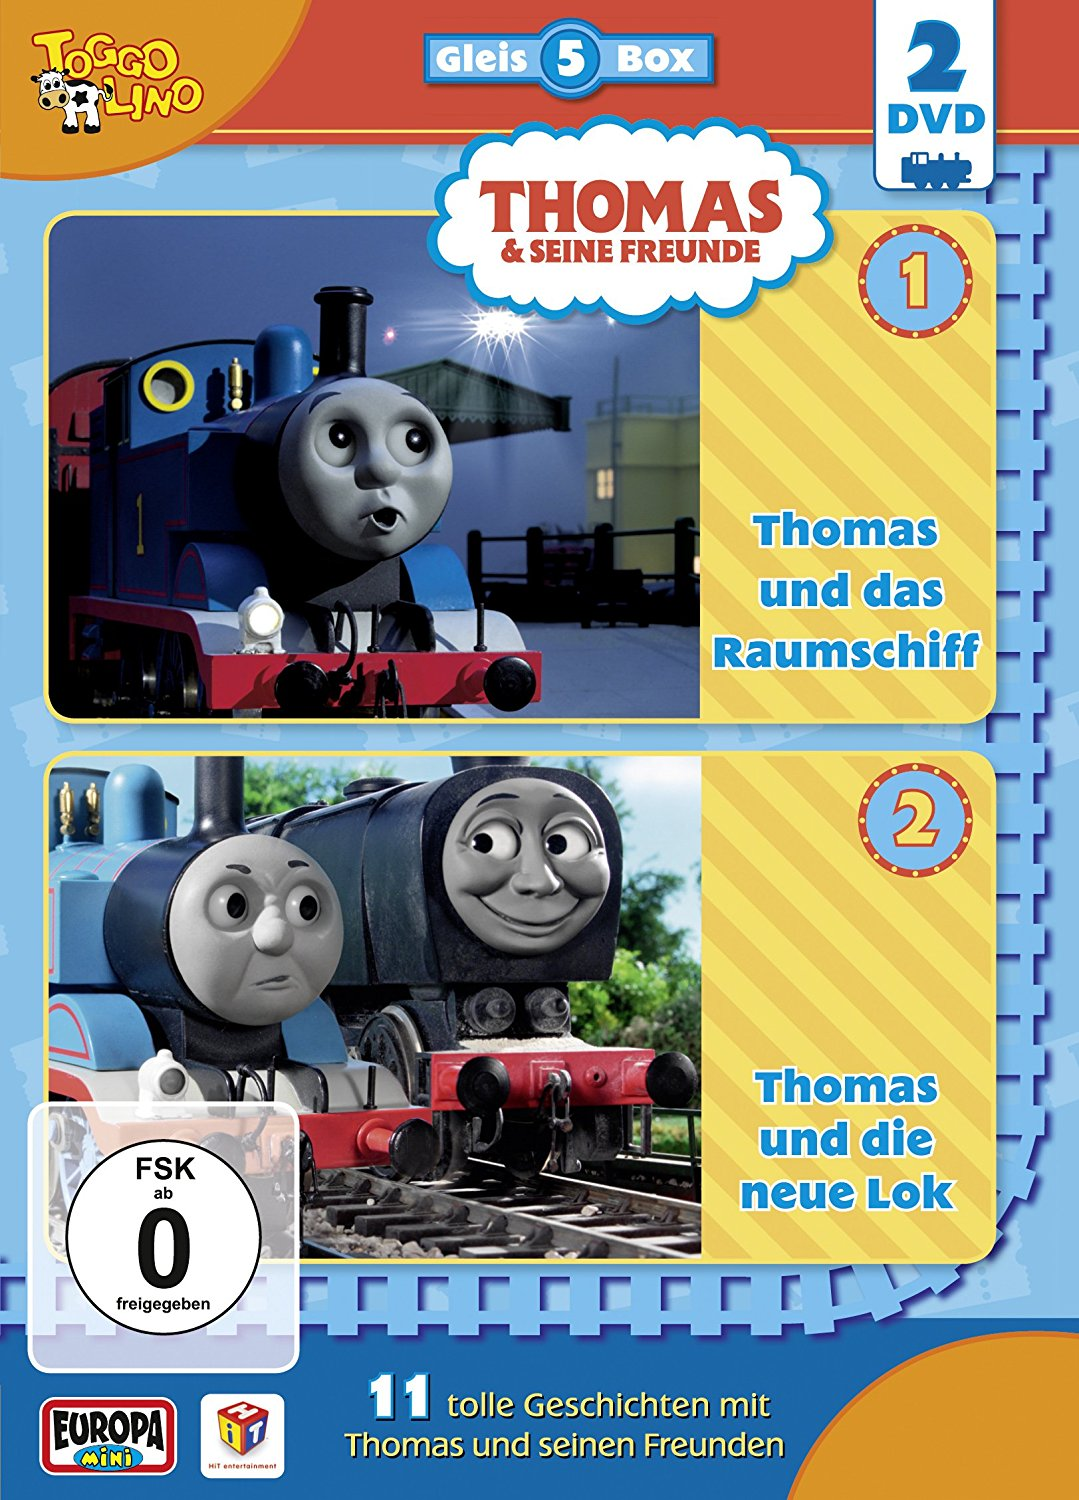 11 Great Stories with Thomas and his Friends